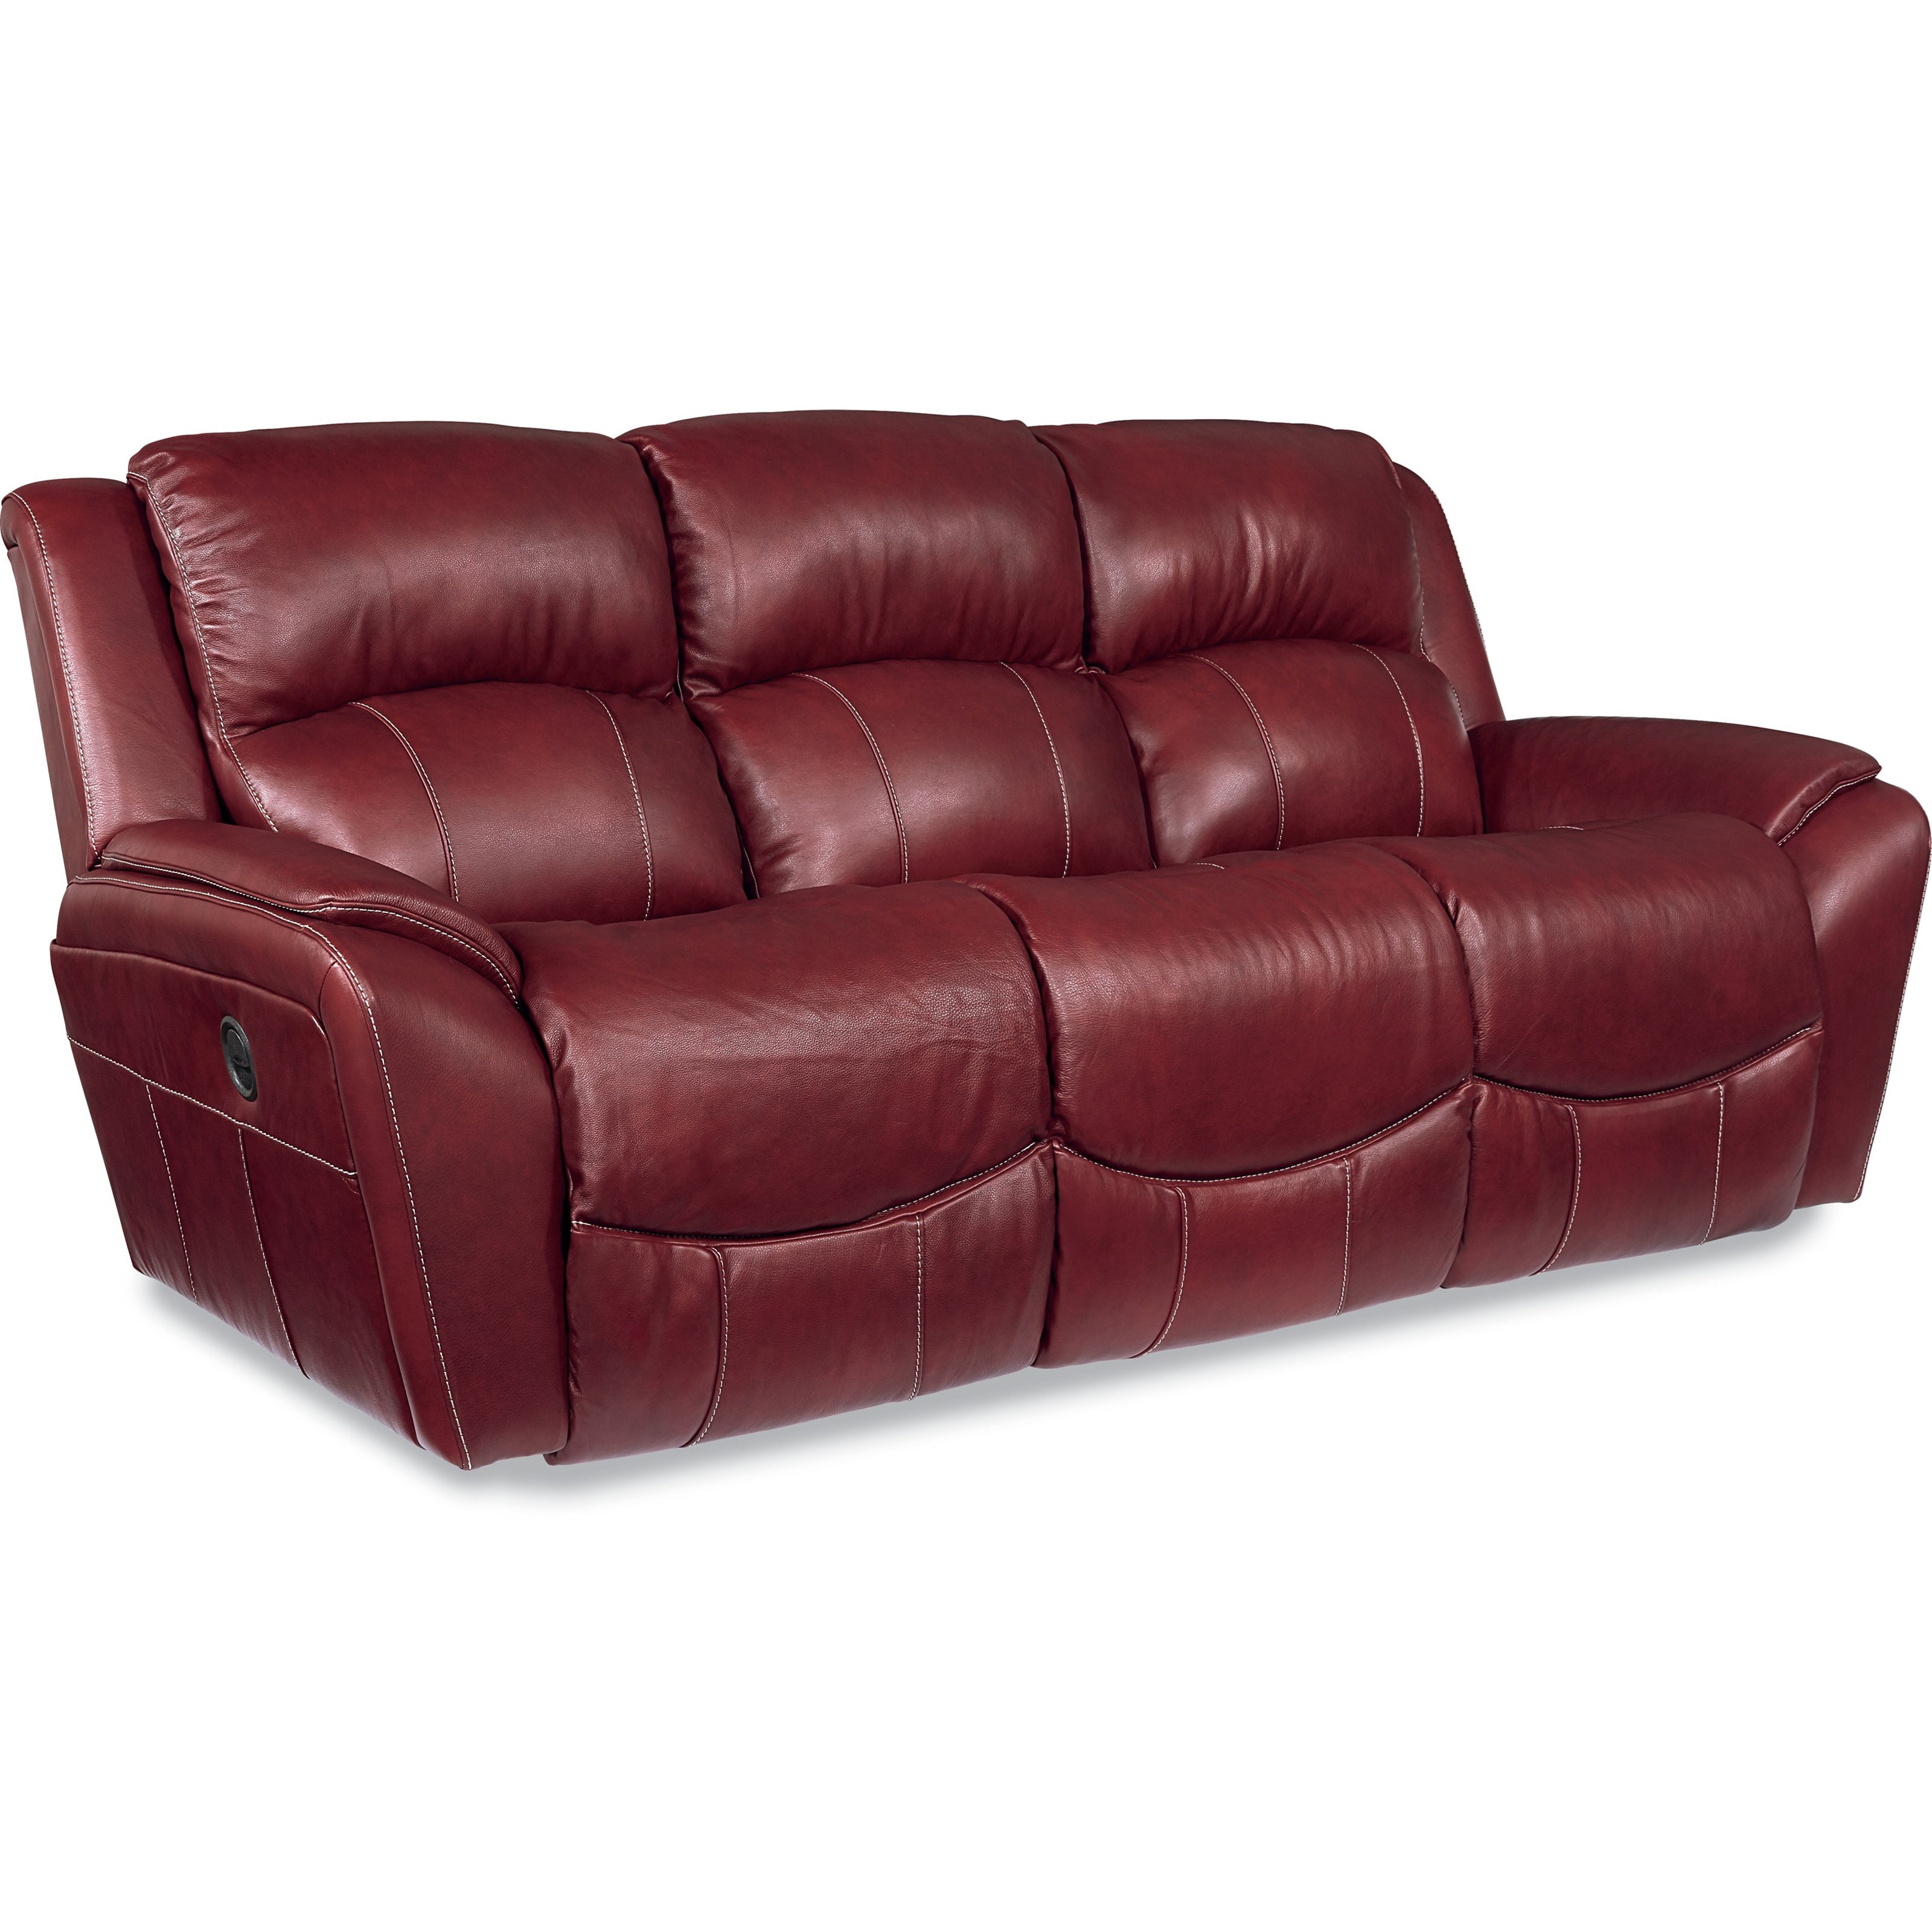 Casual Power La Z Time Full Reclining Sofa with Pillow Arms by La